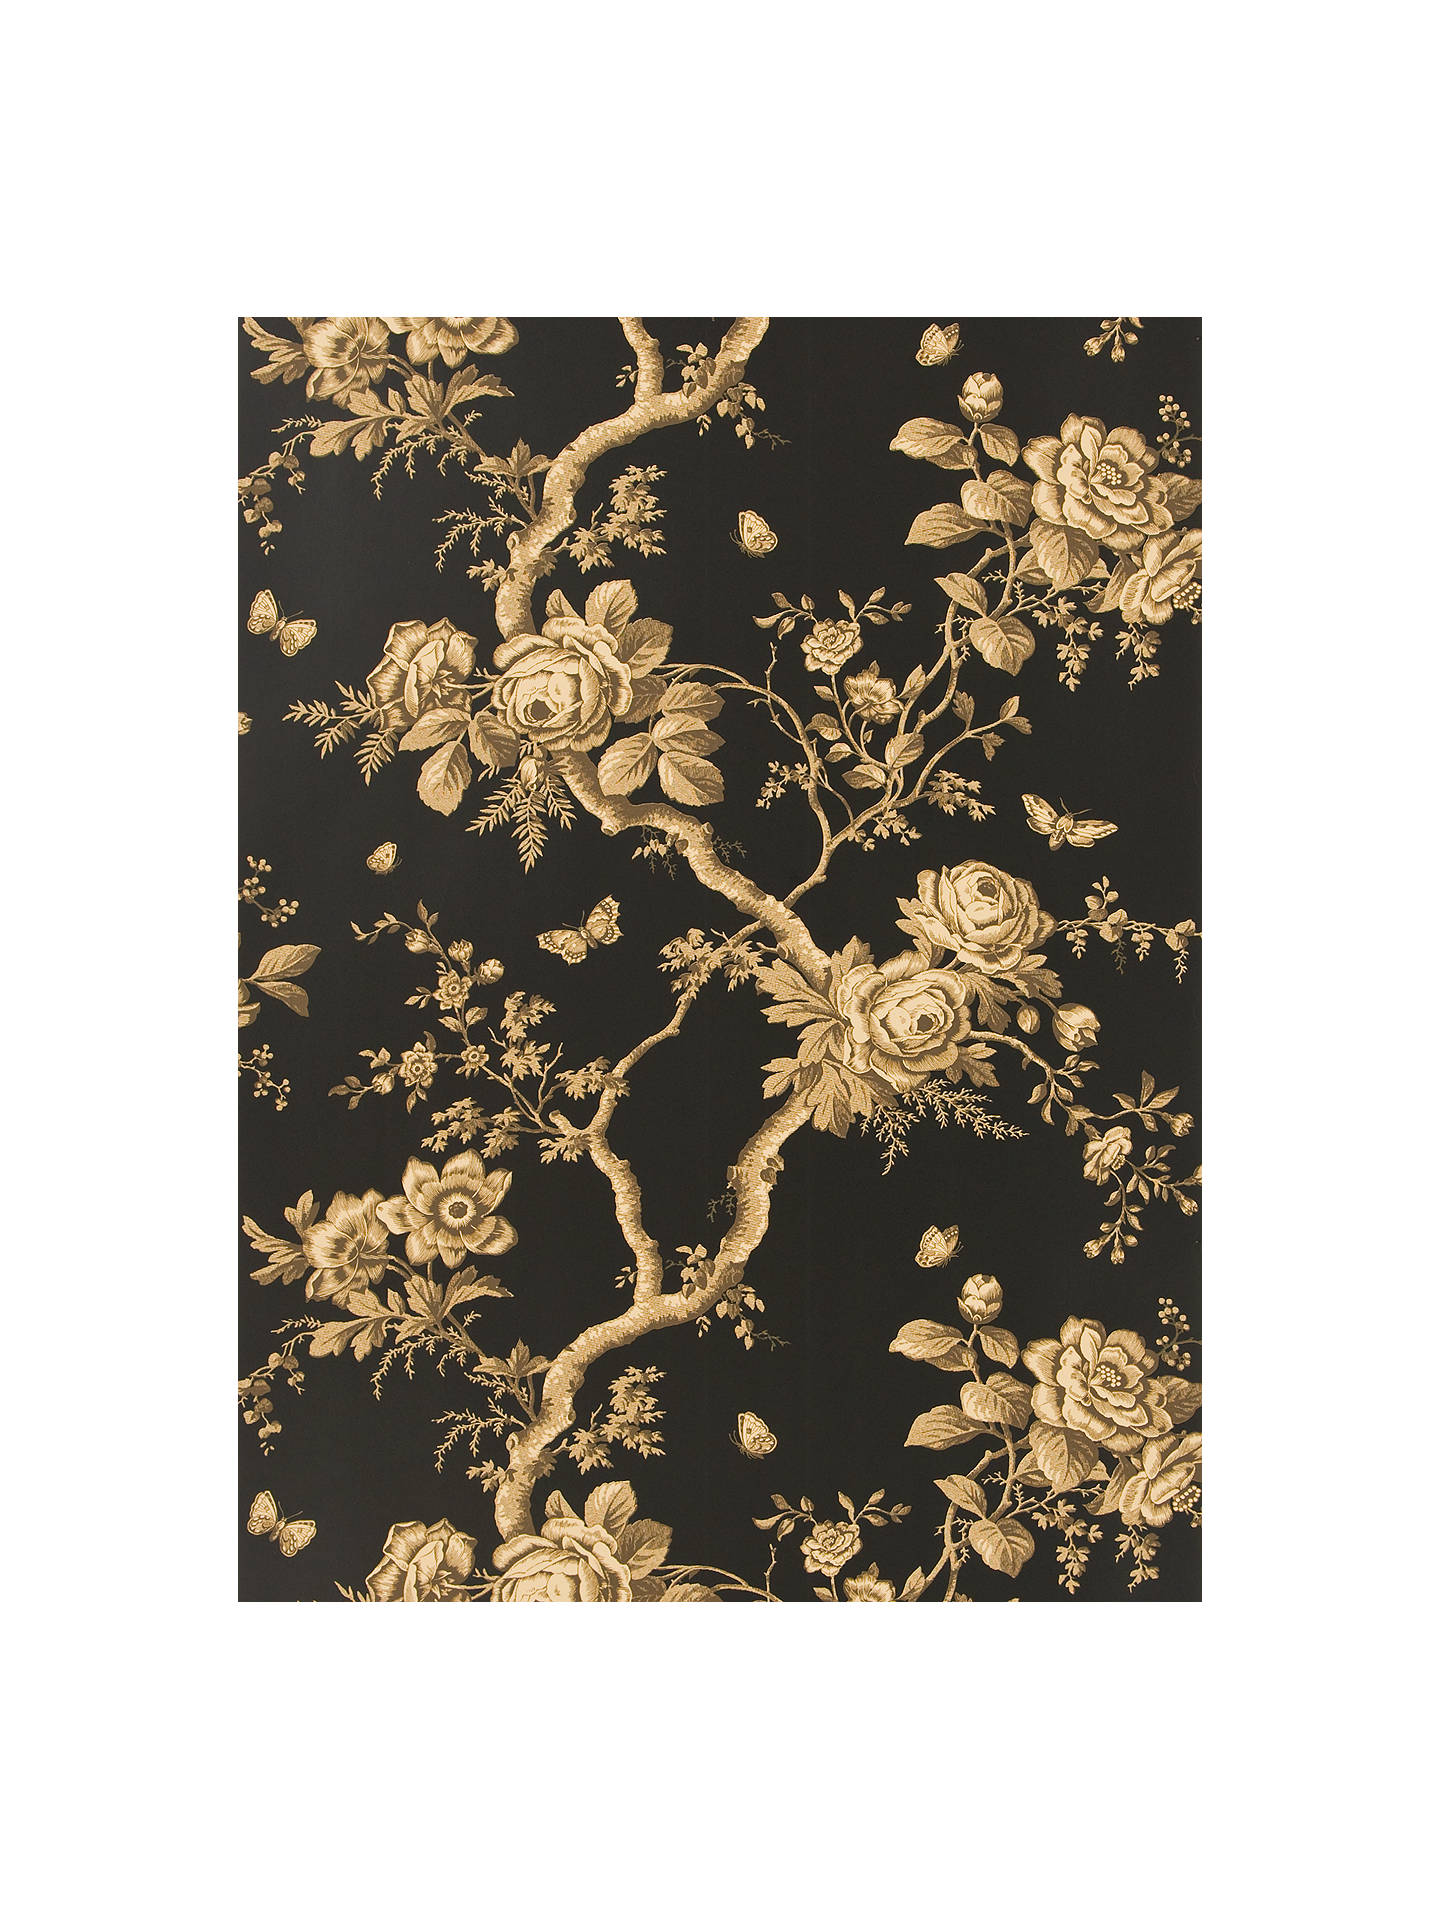 BuyRalph Lauren Ashfield Floral Wallpaper, PRL027/06 Online at johnlewis.com